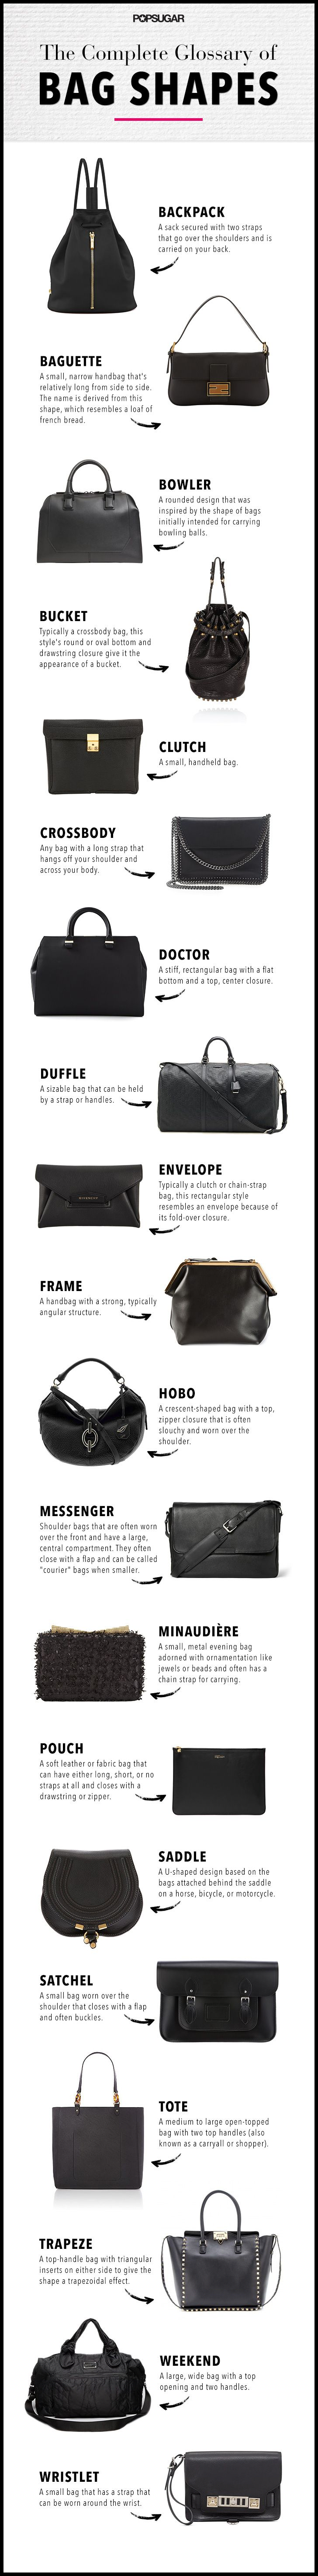 Your go-to guide for choosing the perfect bag shape for your otufit